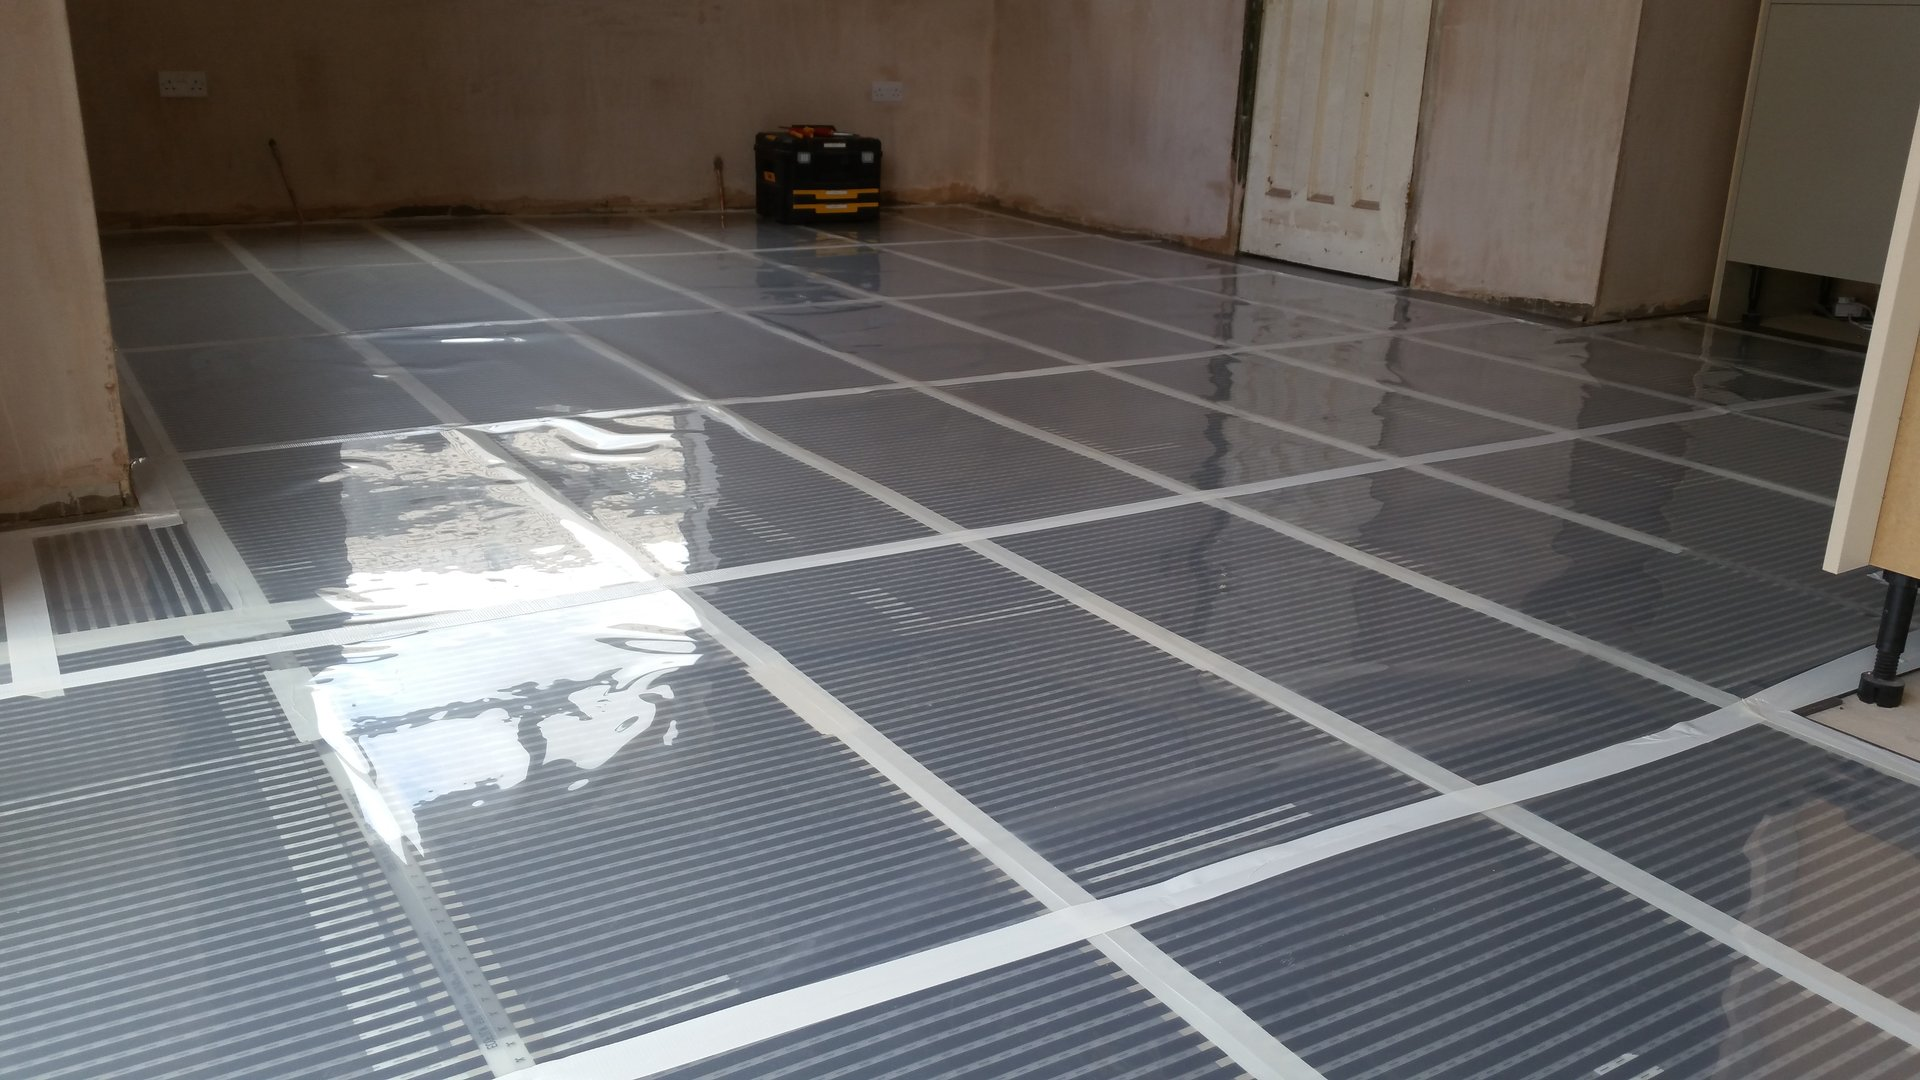 Electric underfloor heating installed by AJOB Electrical Ltd electrician in Leeds